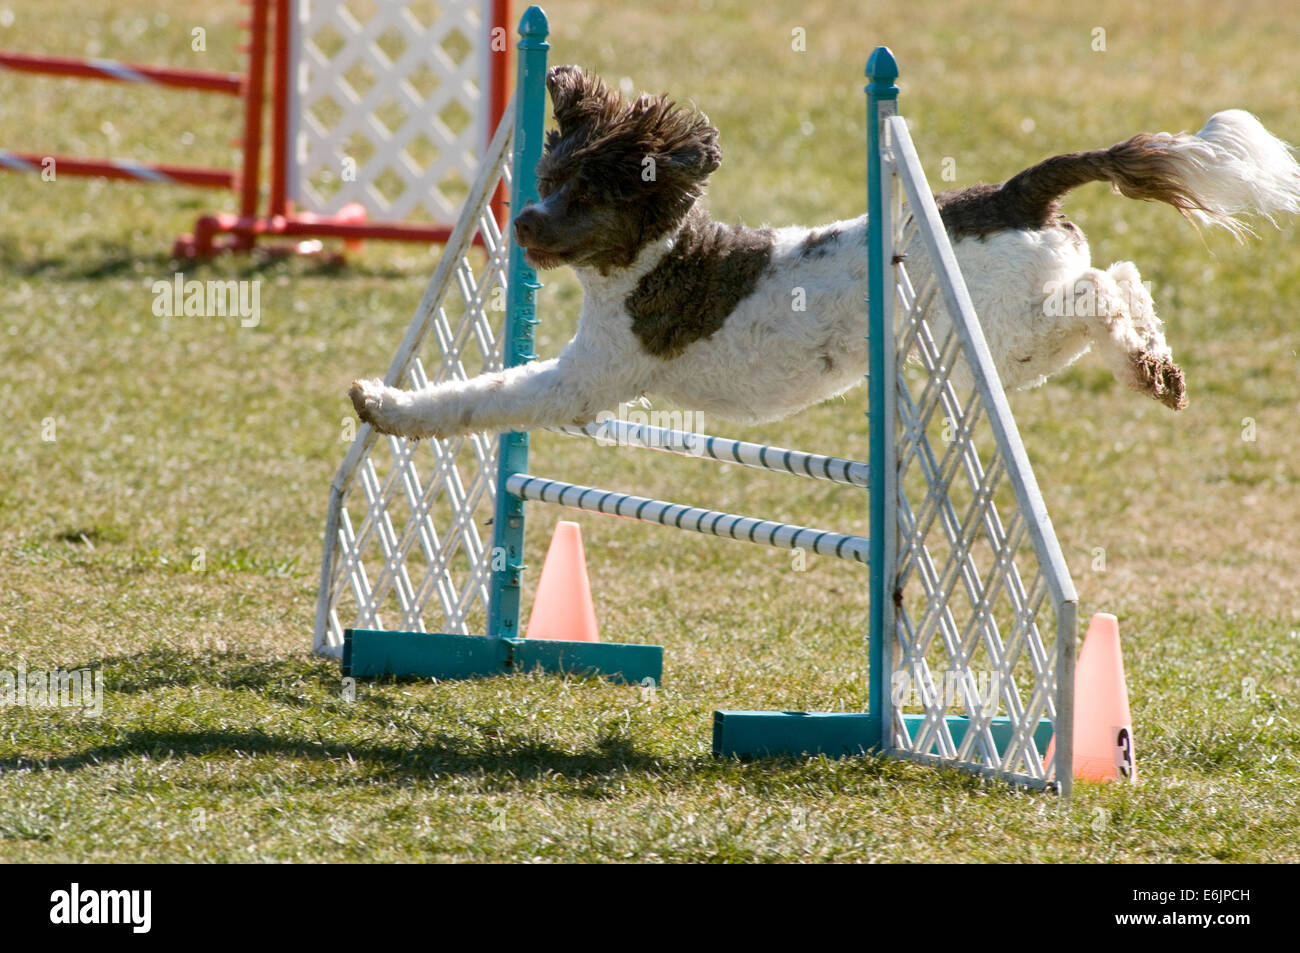 A brown and white Spaniel mix  jumping over a wingless jump agility equipment in a field. - Stock Image